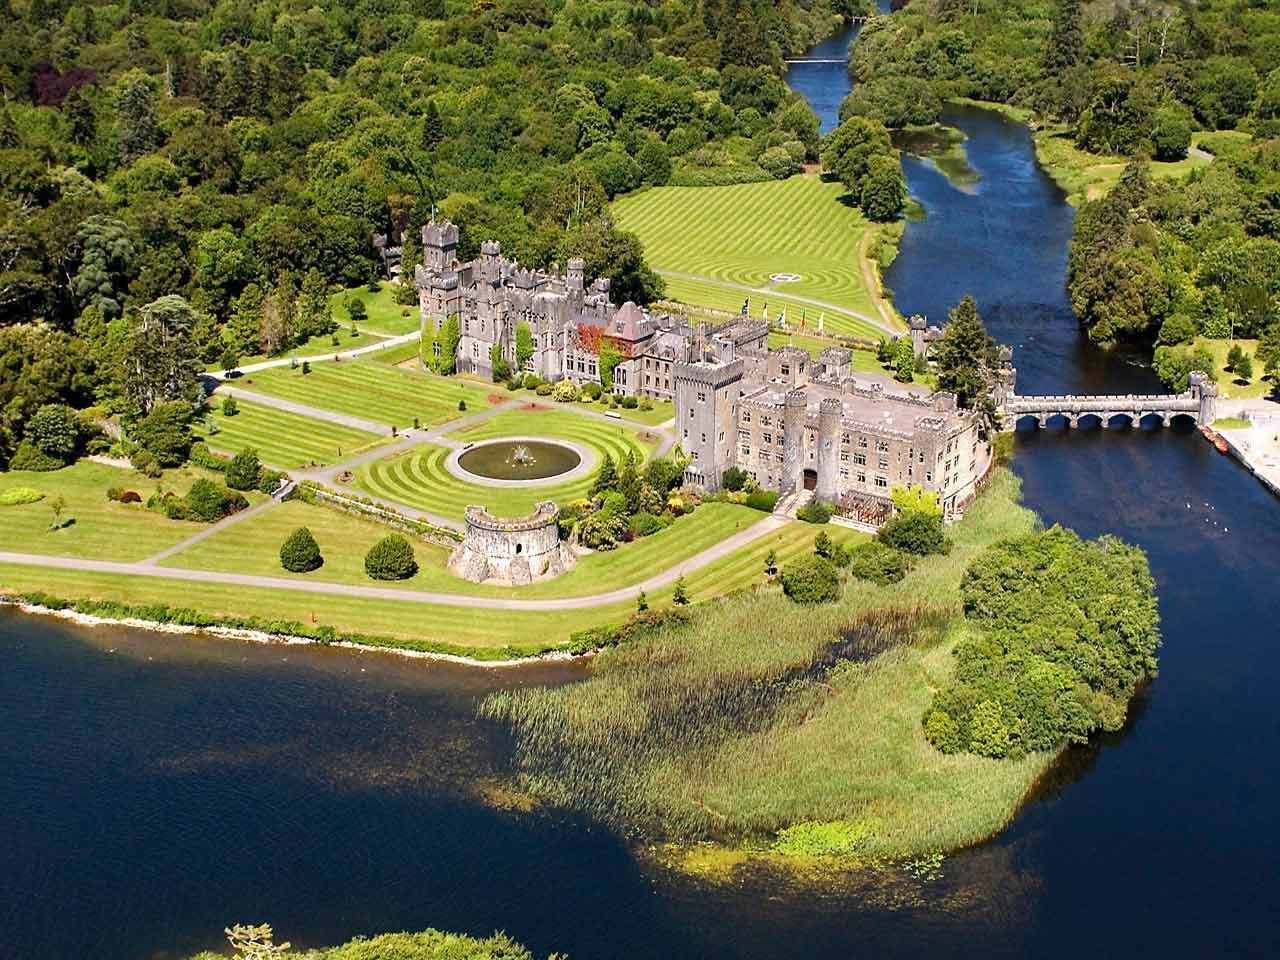 Top 9 castle hotels in the world according to Tripadvisor ...